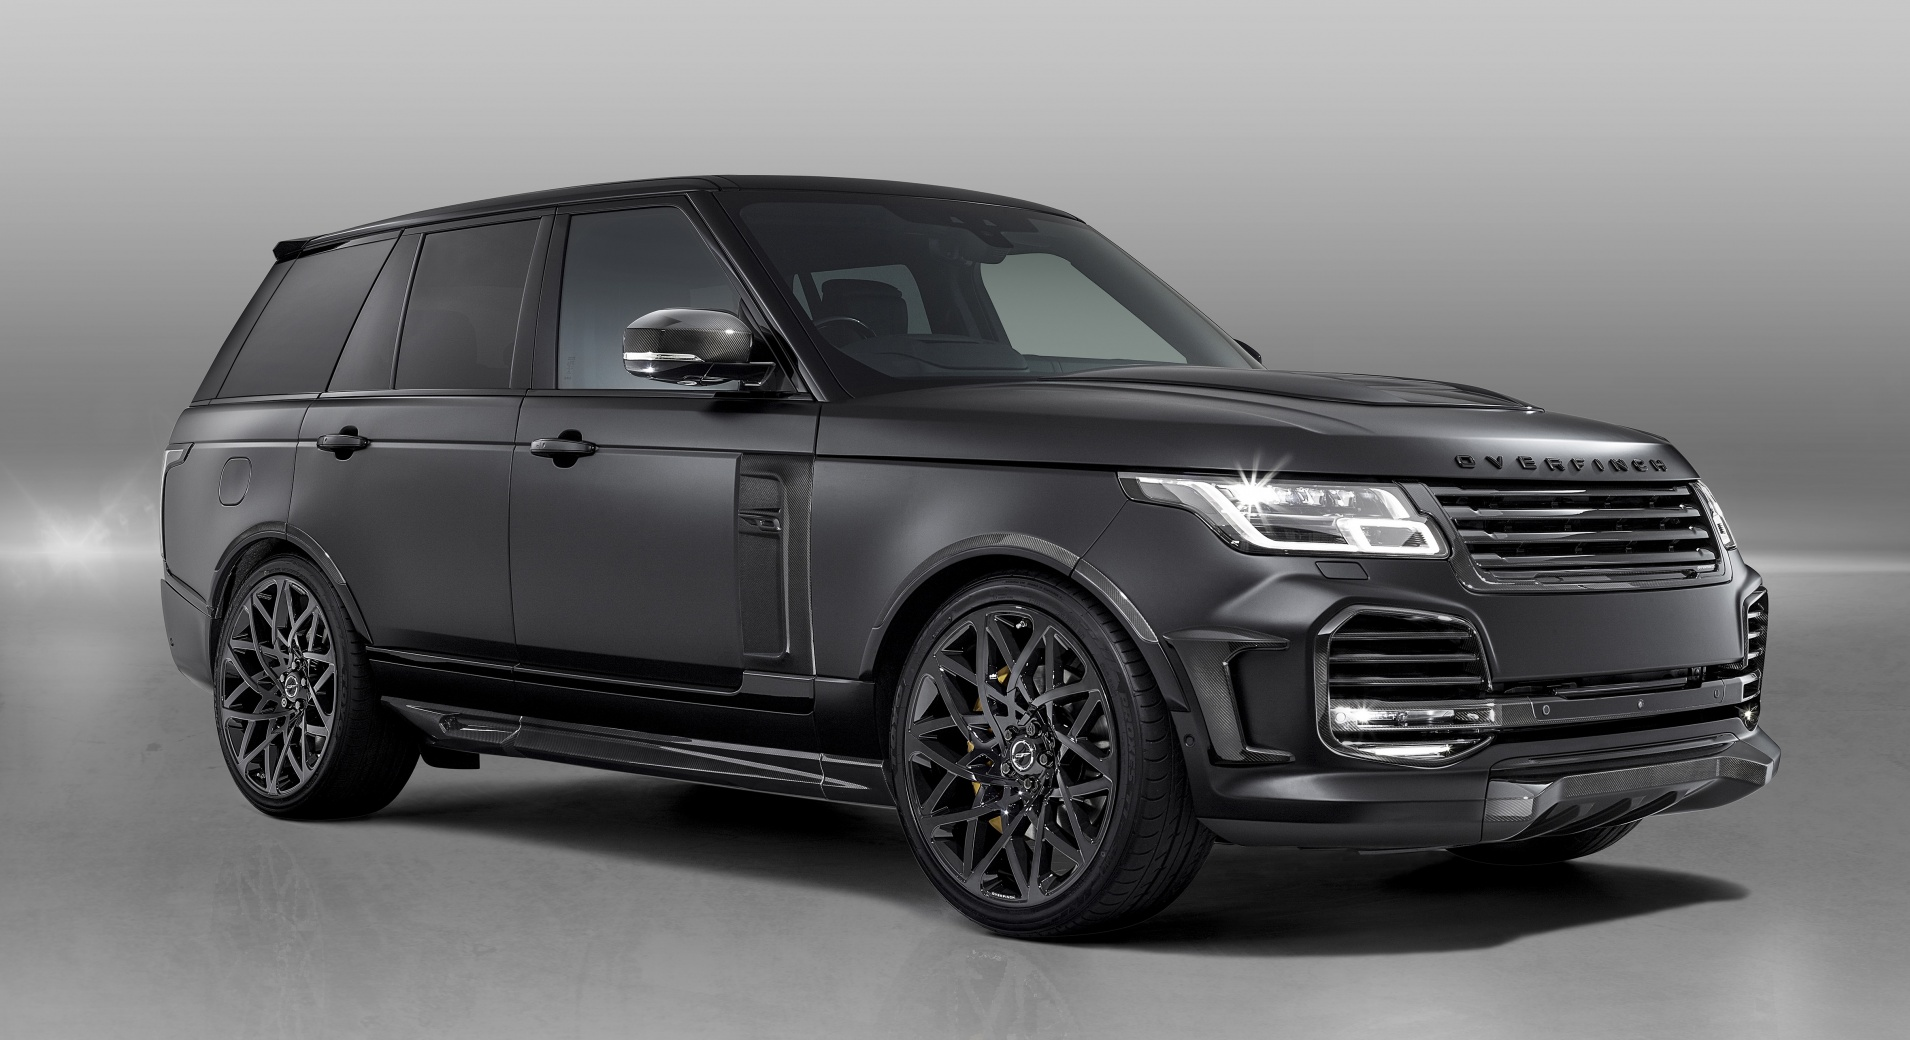 British luxury car customizer Overfinch has come out with the Velocity Project based on the Range Rover SVAutobiography (V8, 575 hp / 429 kW).